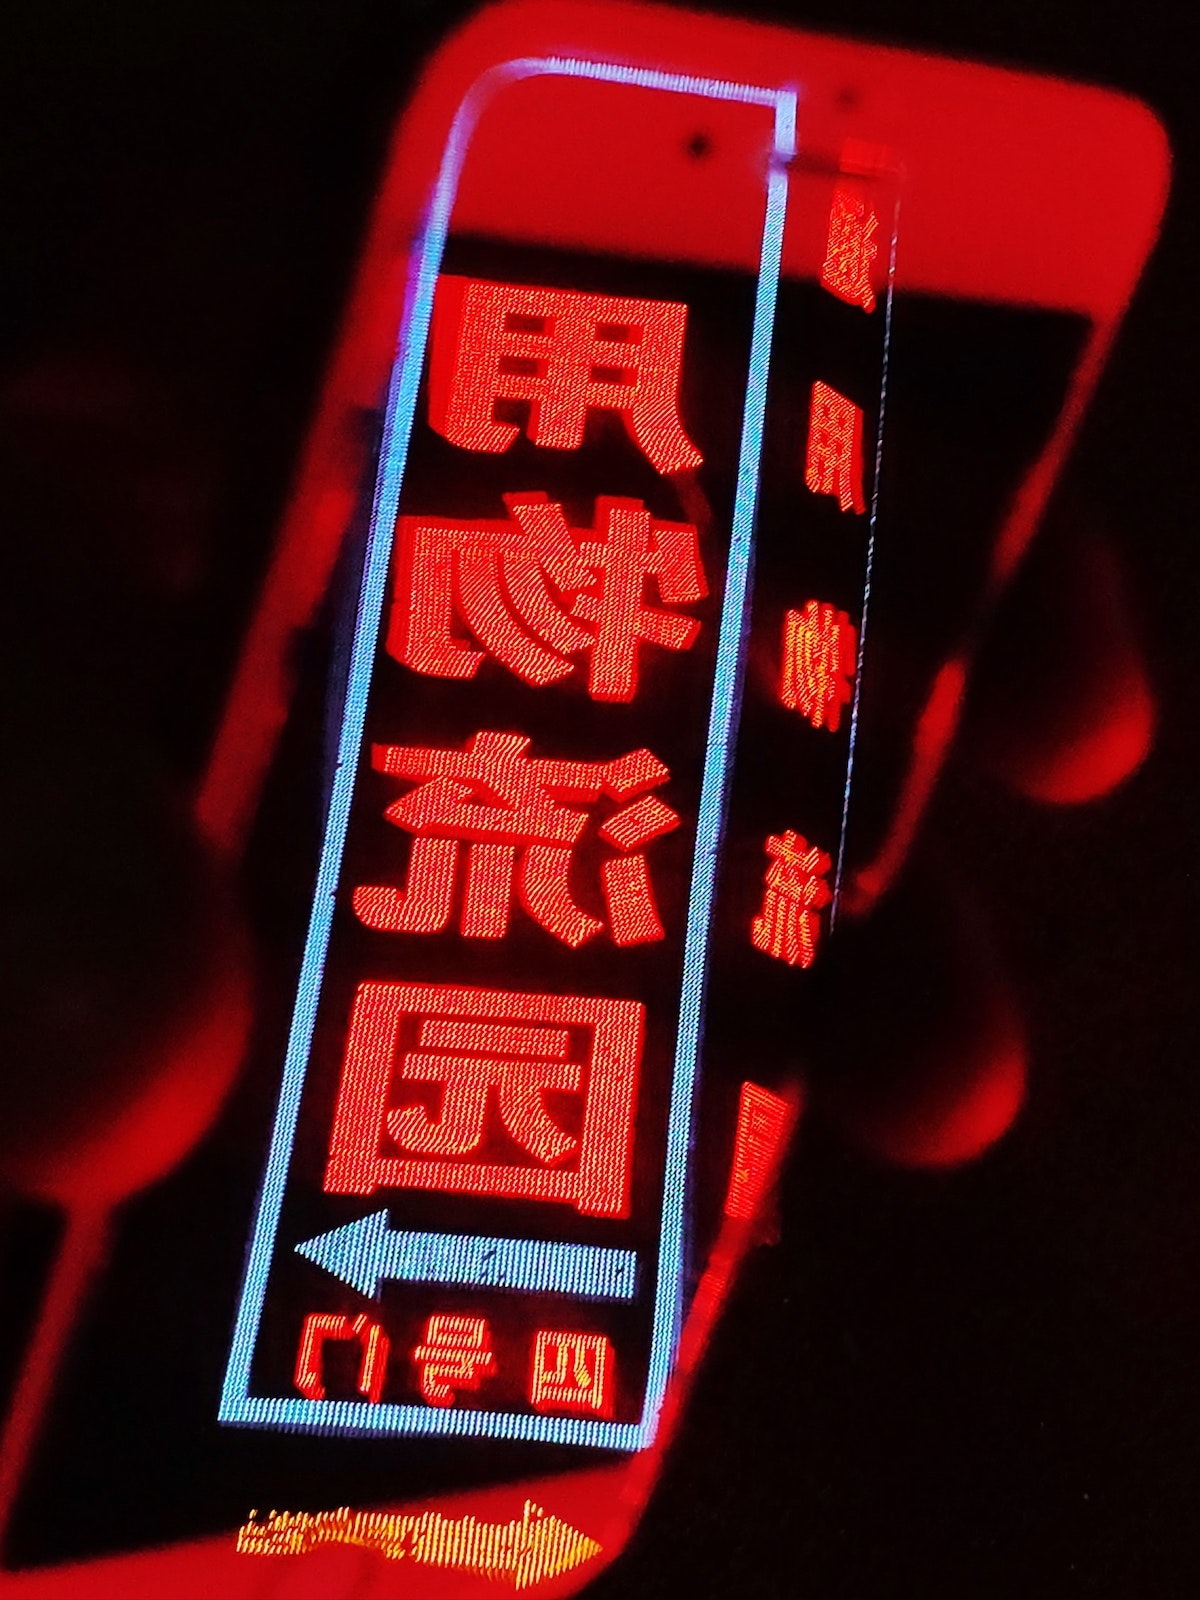 AI Voices are good for the Industry: image of neon sign